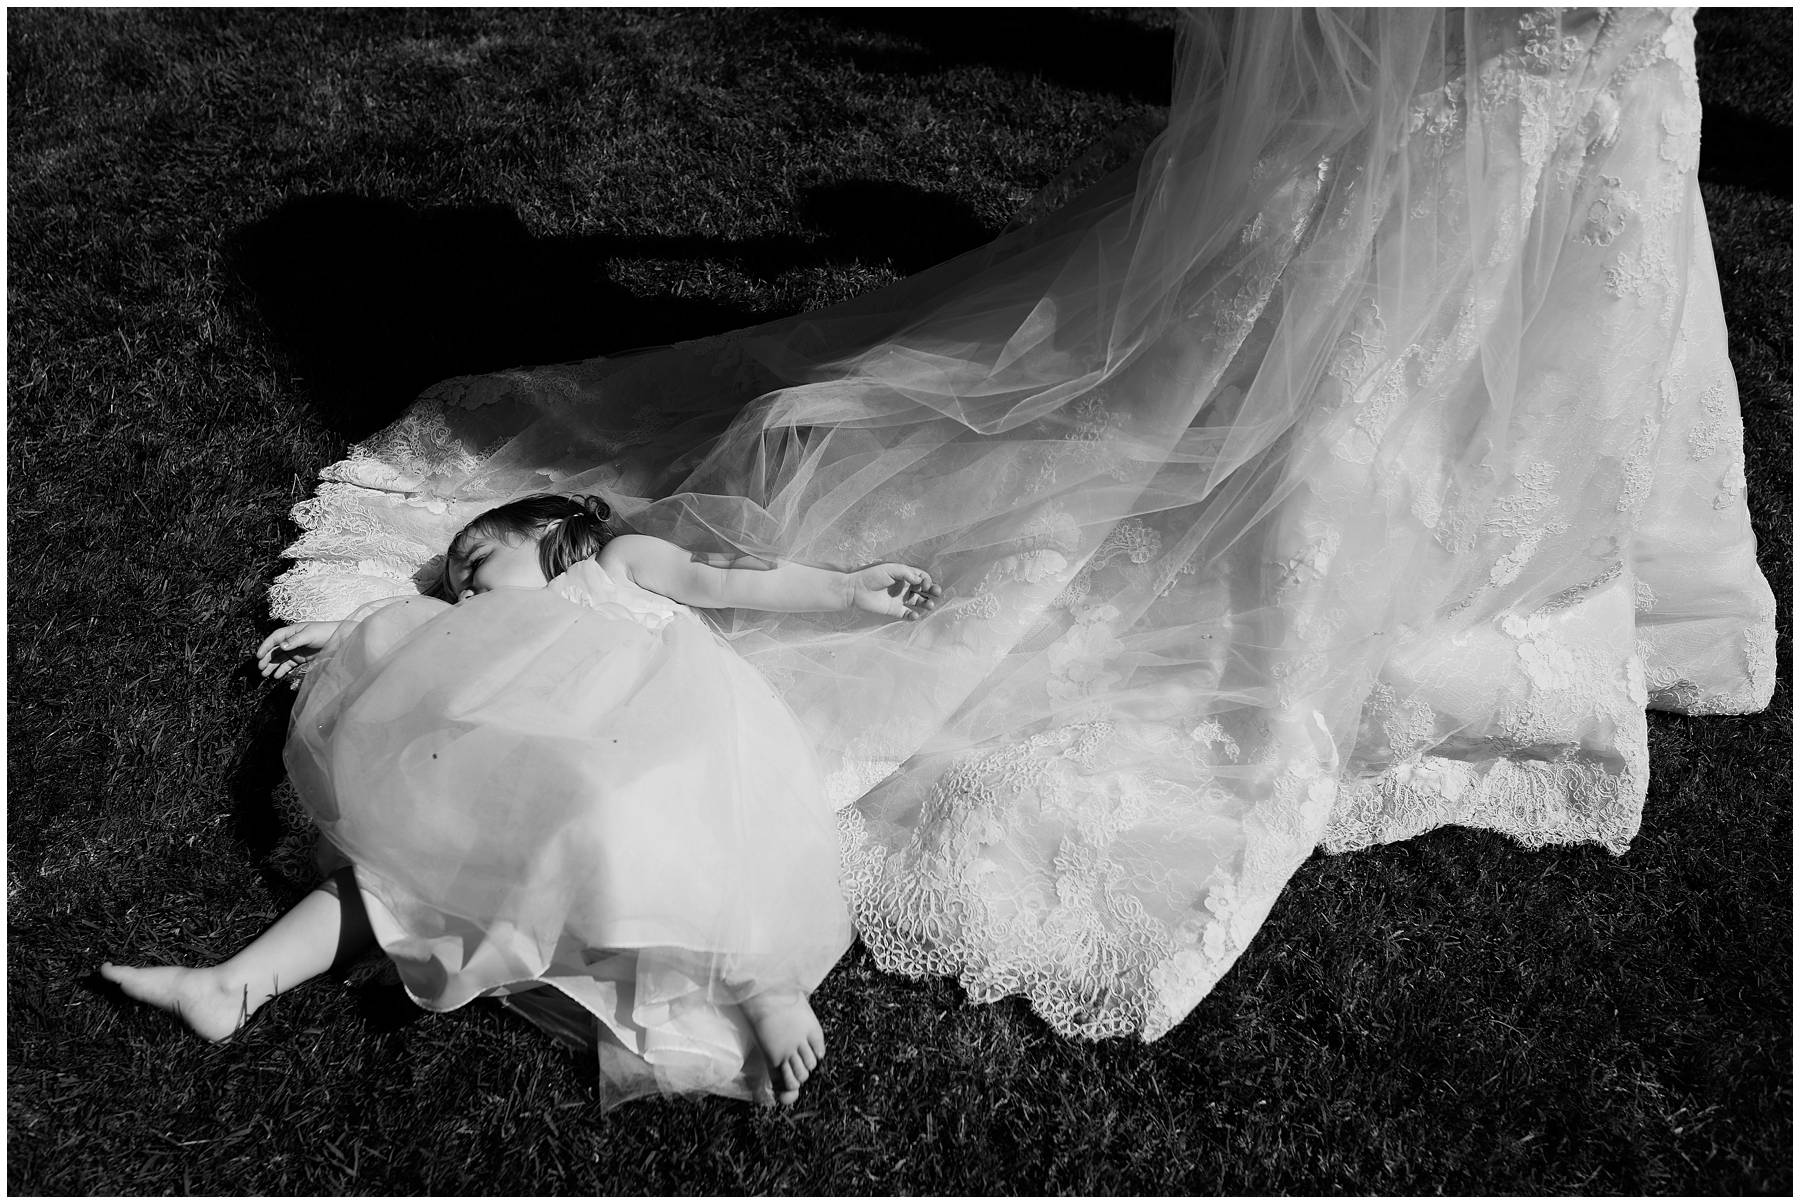 Cute kid lying on mum's wedding dress